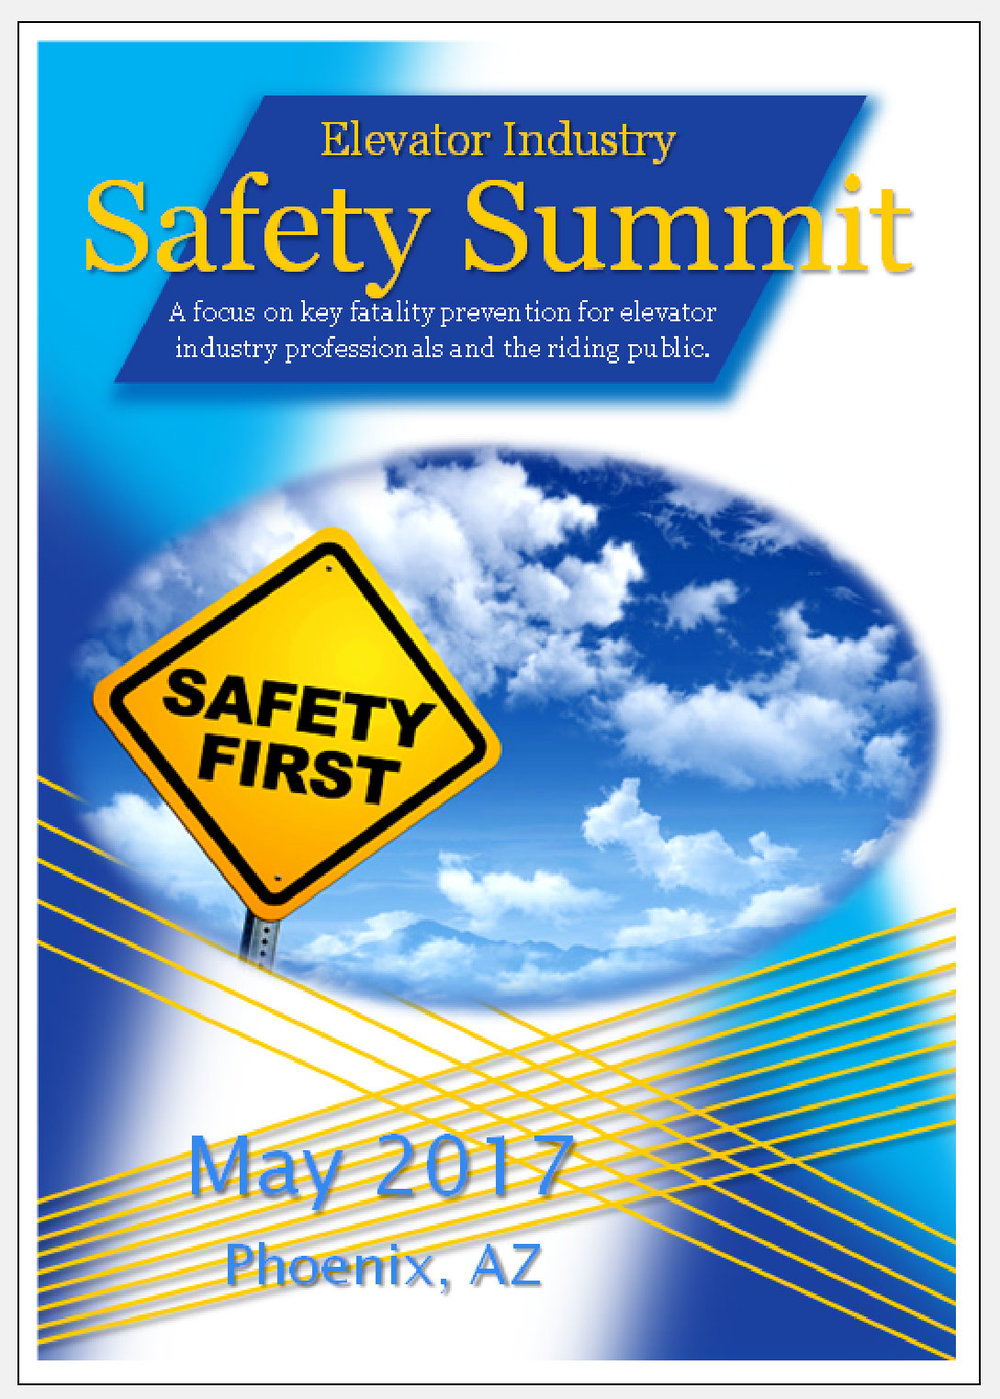 In memory of Robert Caporale and his dedication to elevator safety.   The Elevator Industry Safety Summit Phoenix, AZ May 21-23, 2017